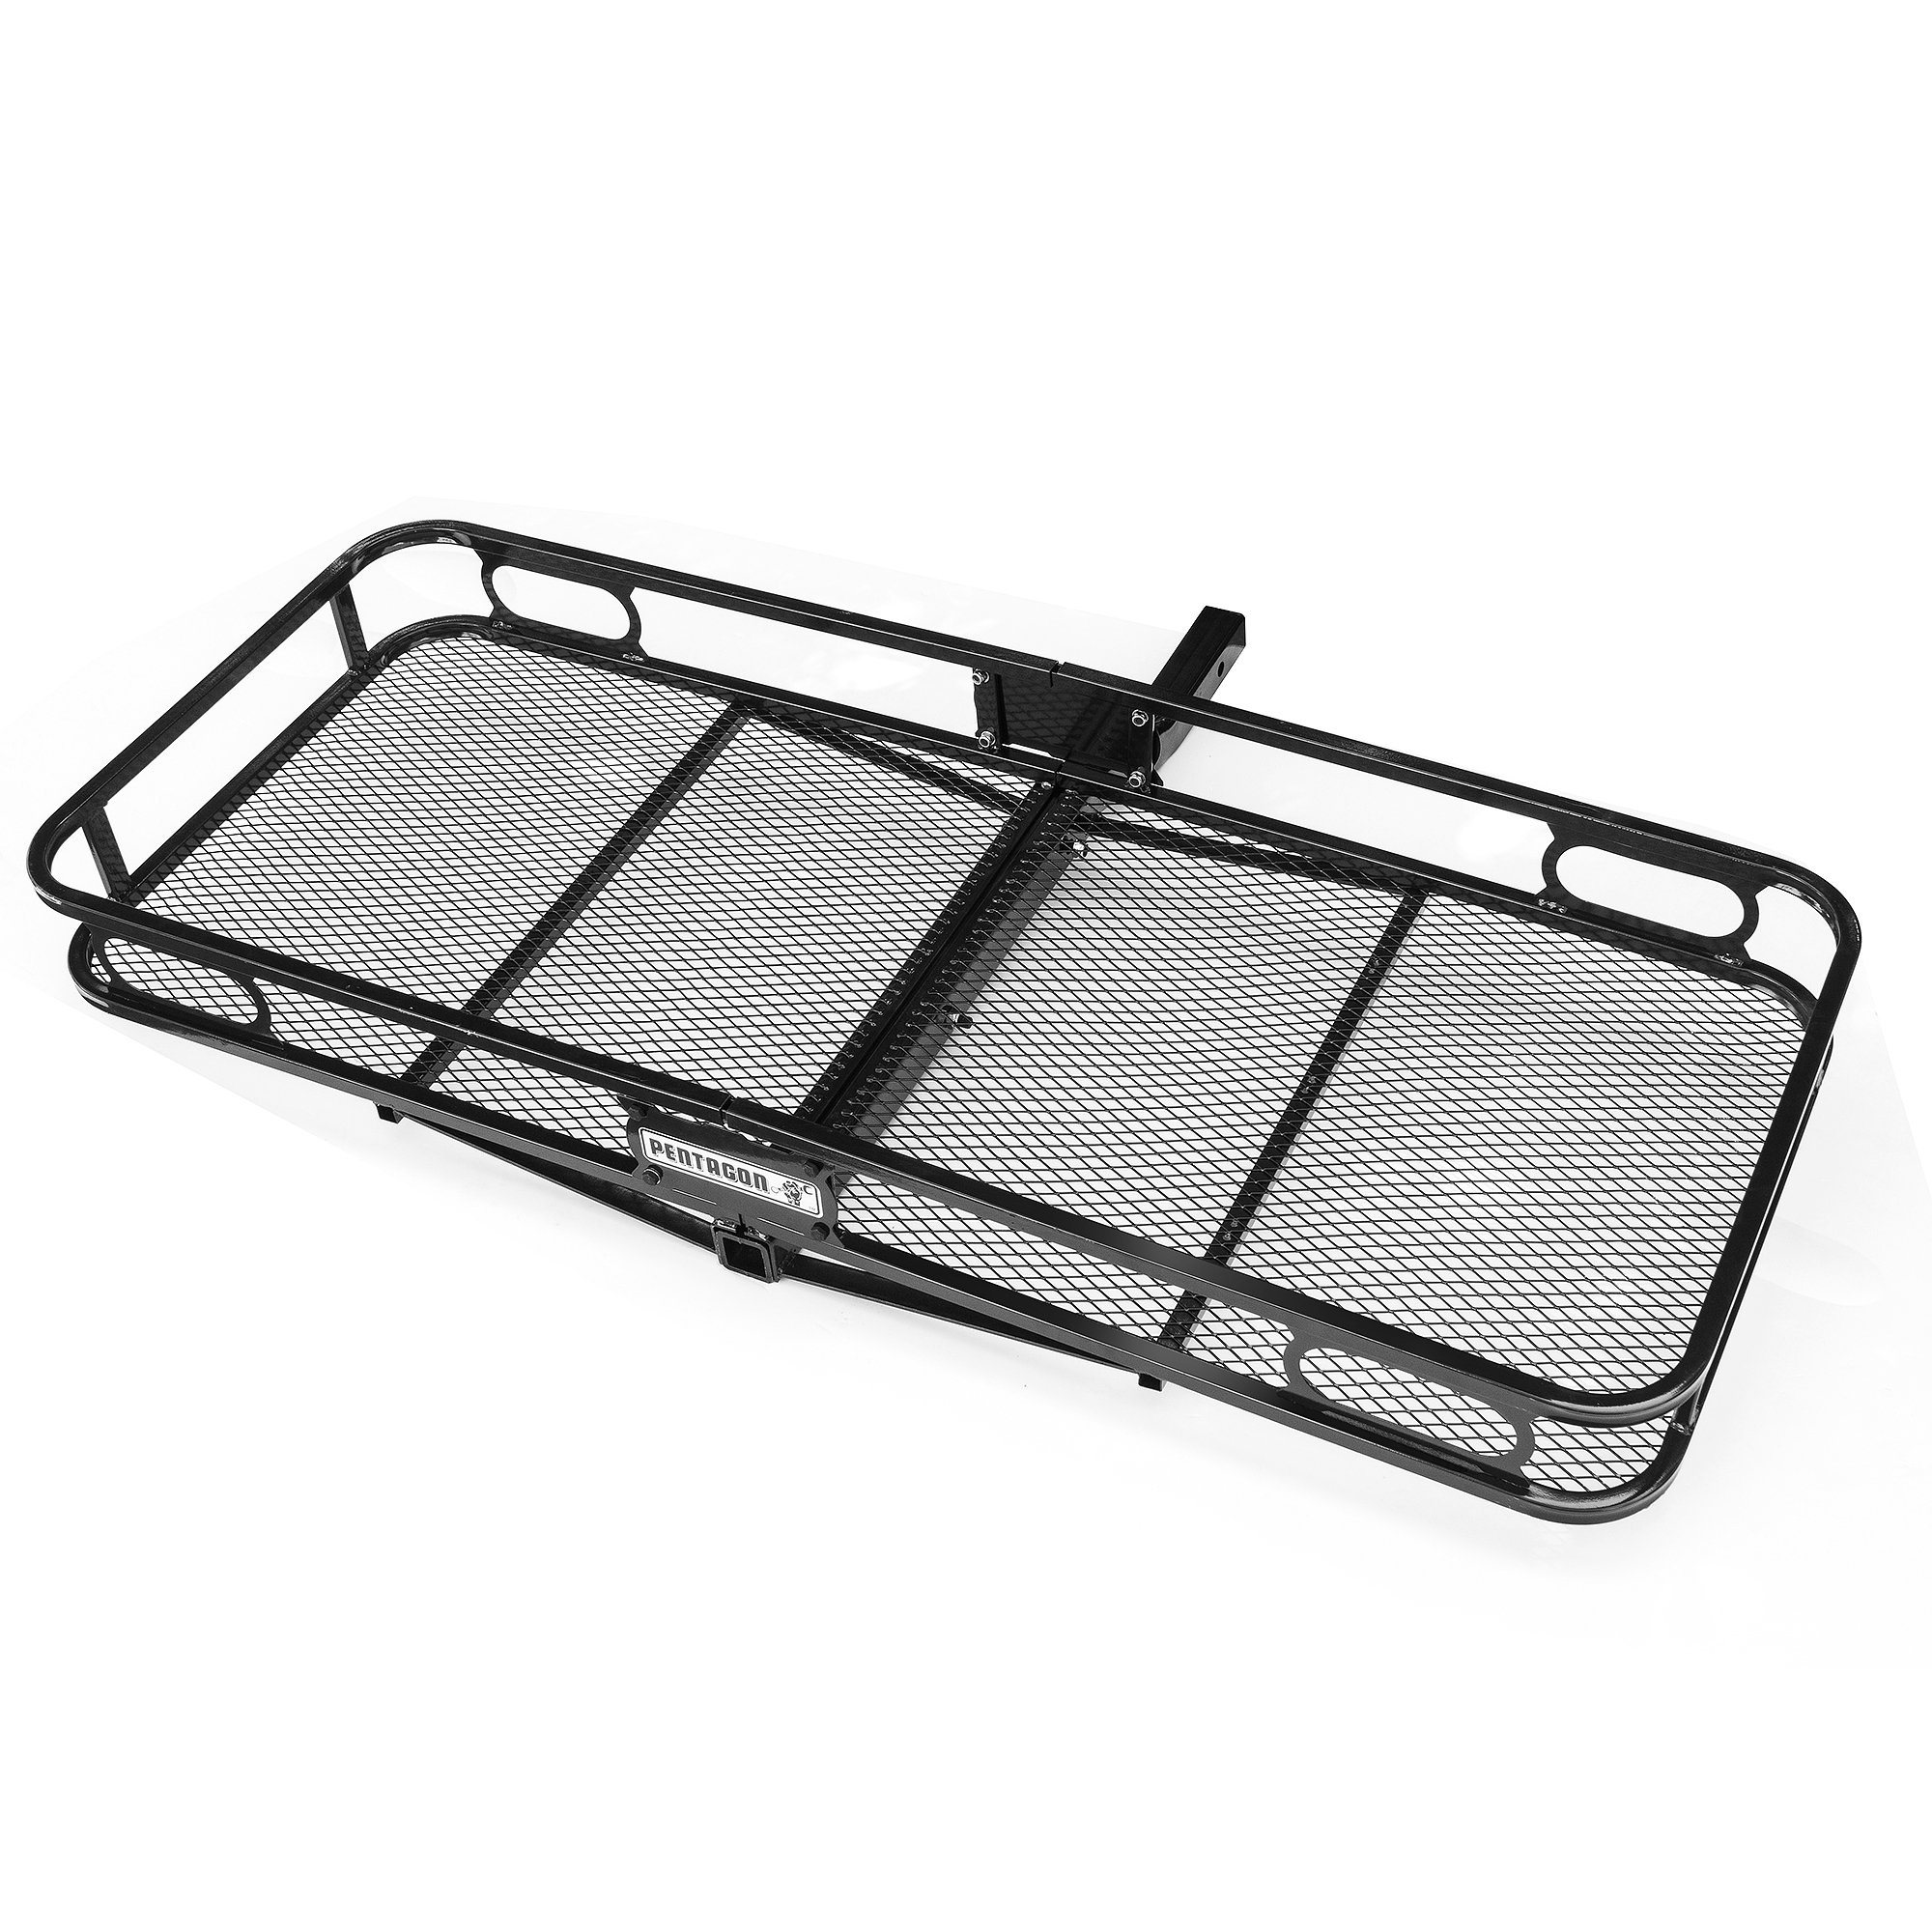 Pentagon Tools Trailer Hitch Hauler Rack for Automobiles Minivans SUV by PENTAGON TOOLS